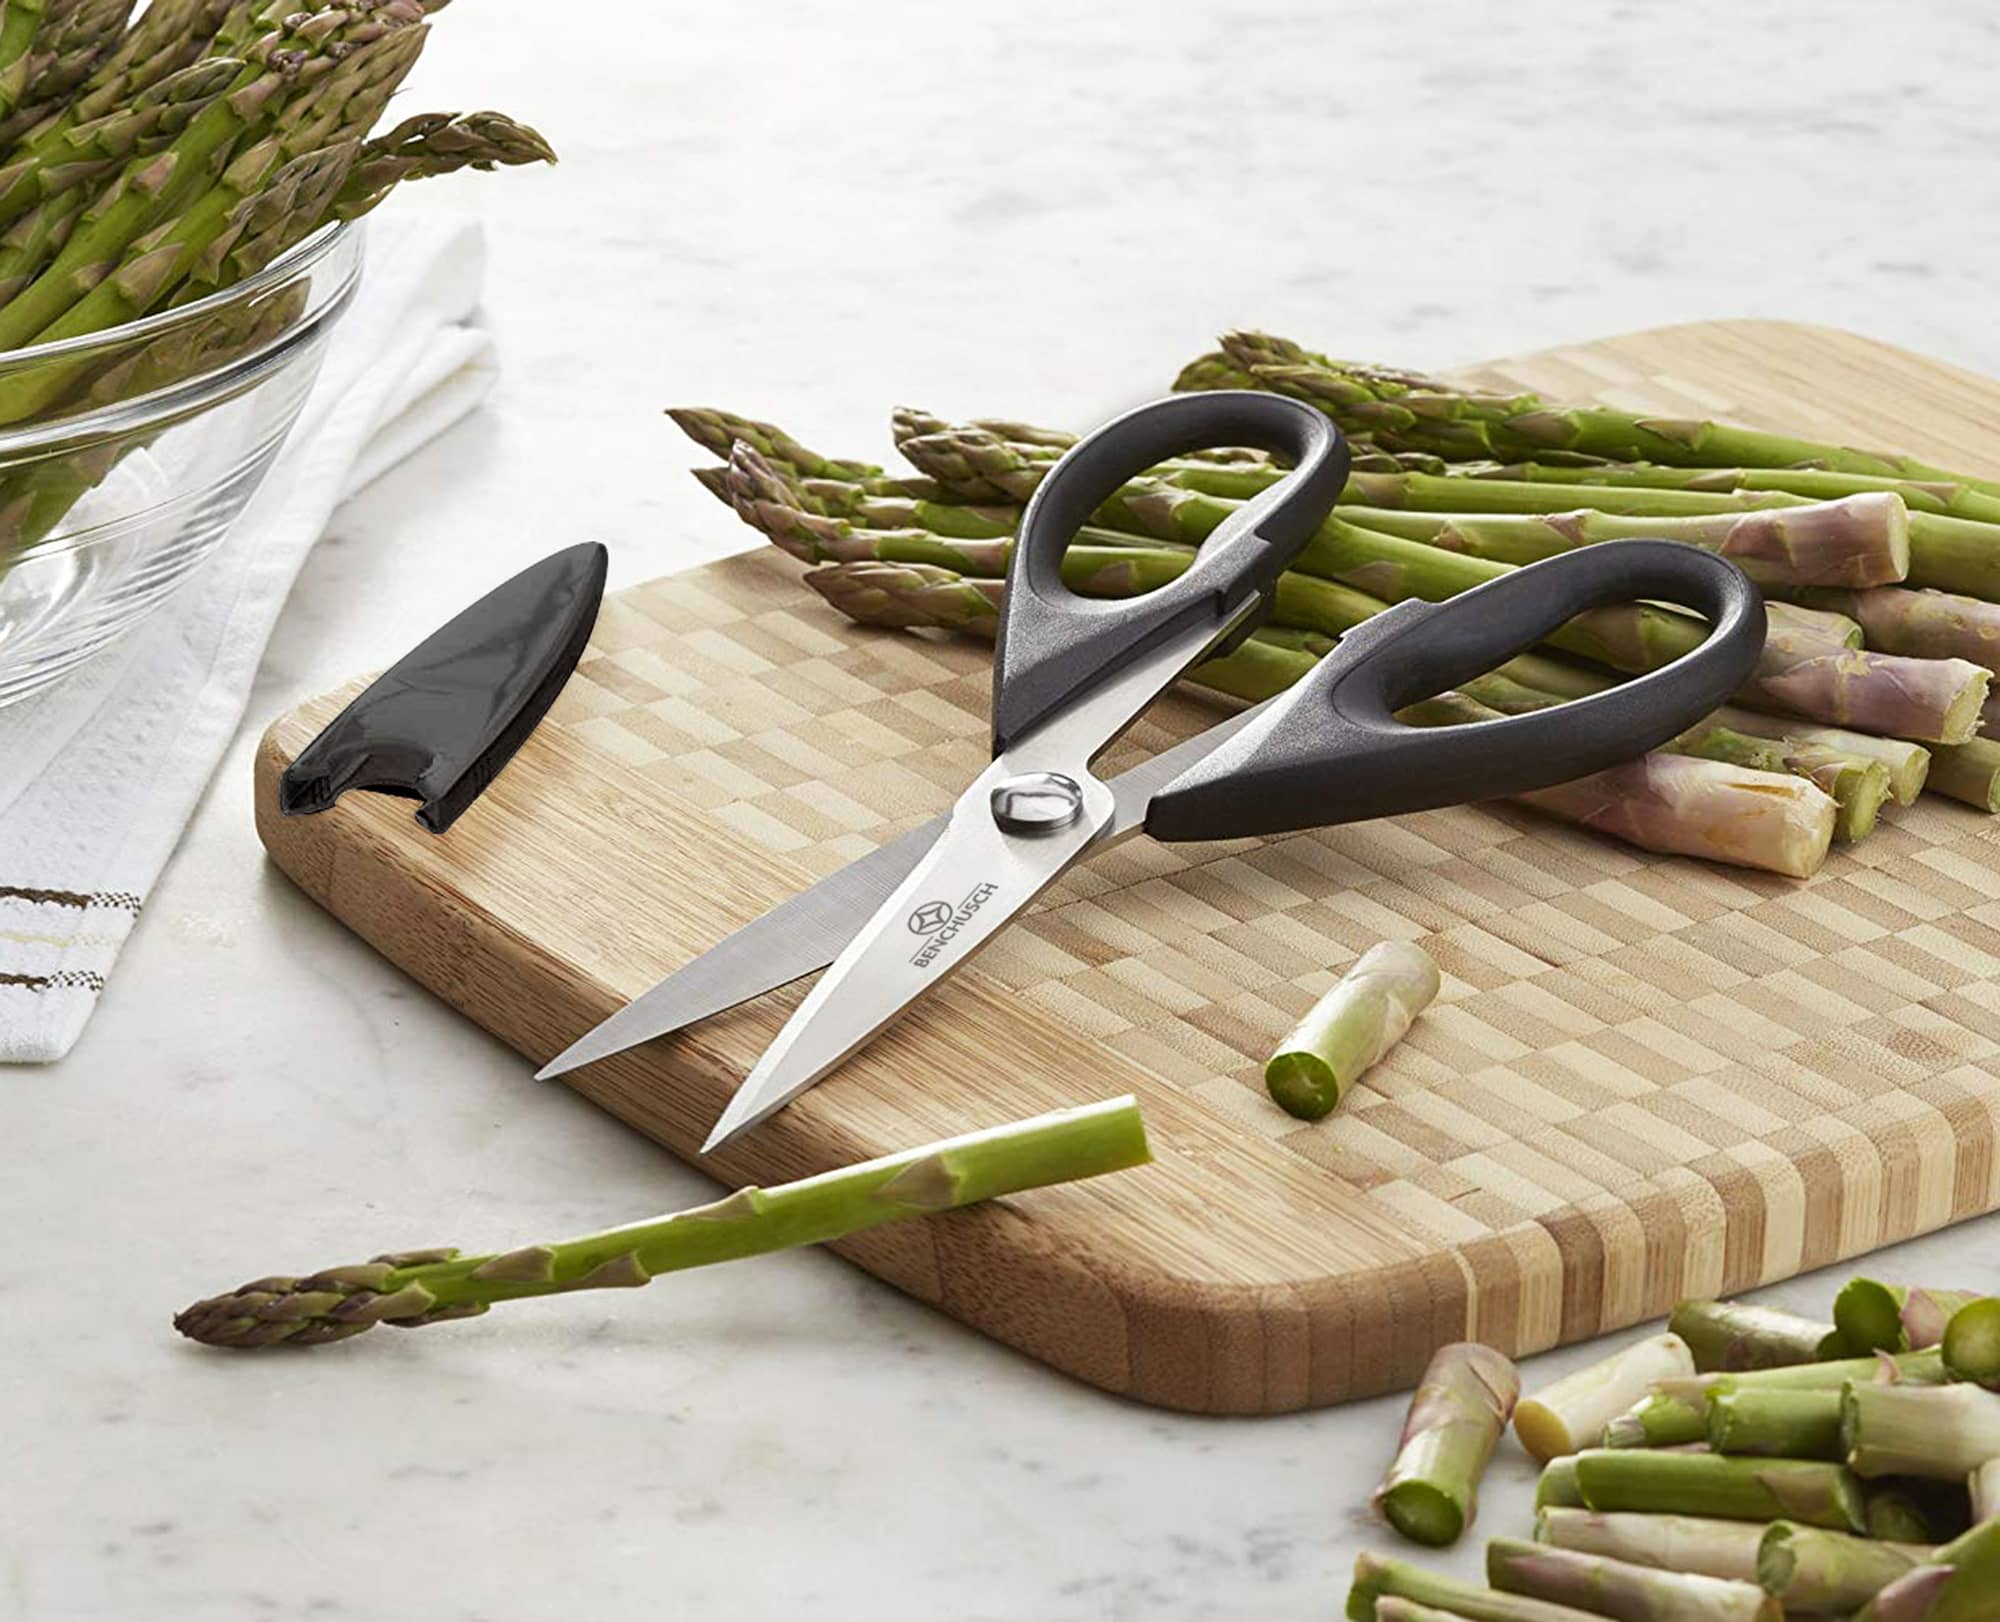 Benchusch Heavy Duty Kitchen Shears with cutting asparagus on the wooden board in the marble background